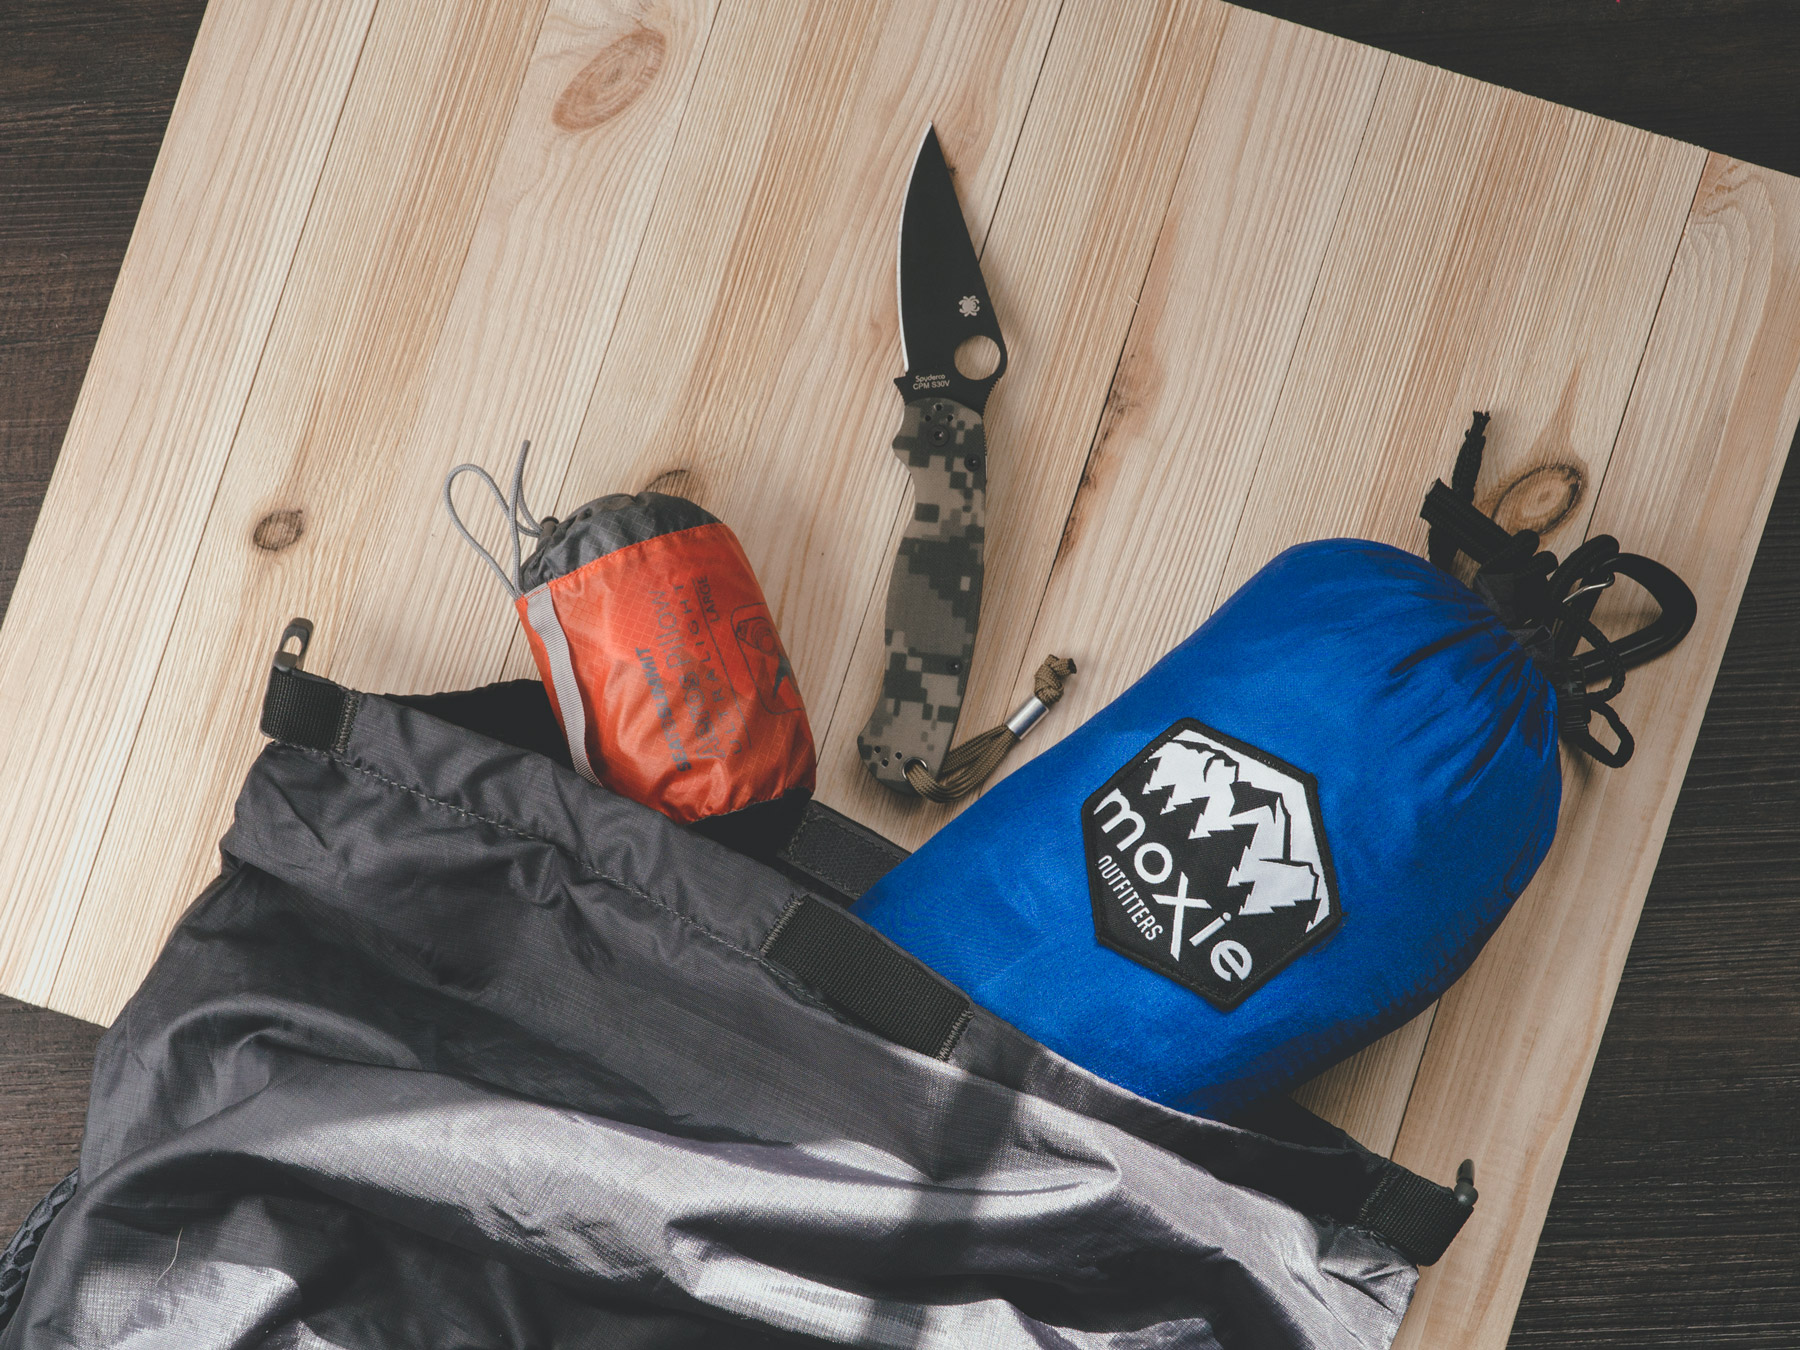 Outdoor Adventure Gear for Camping